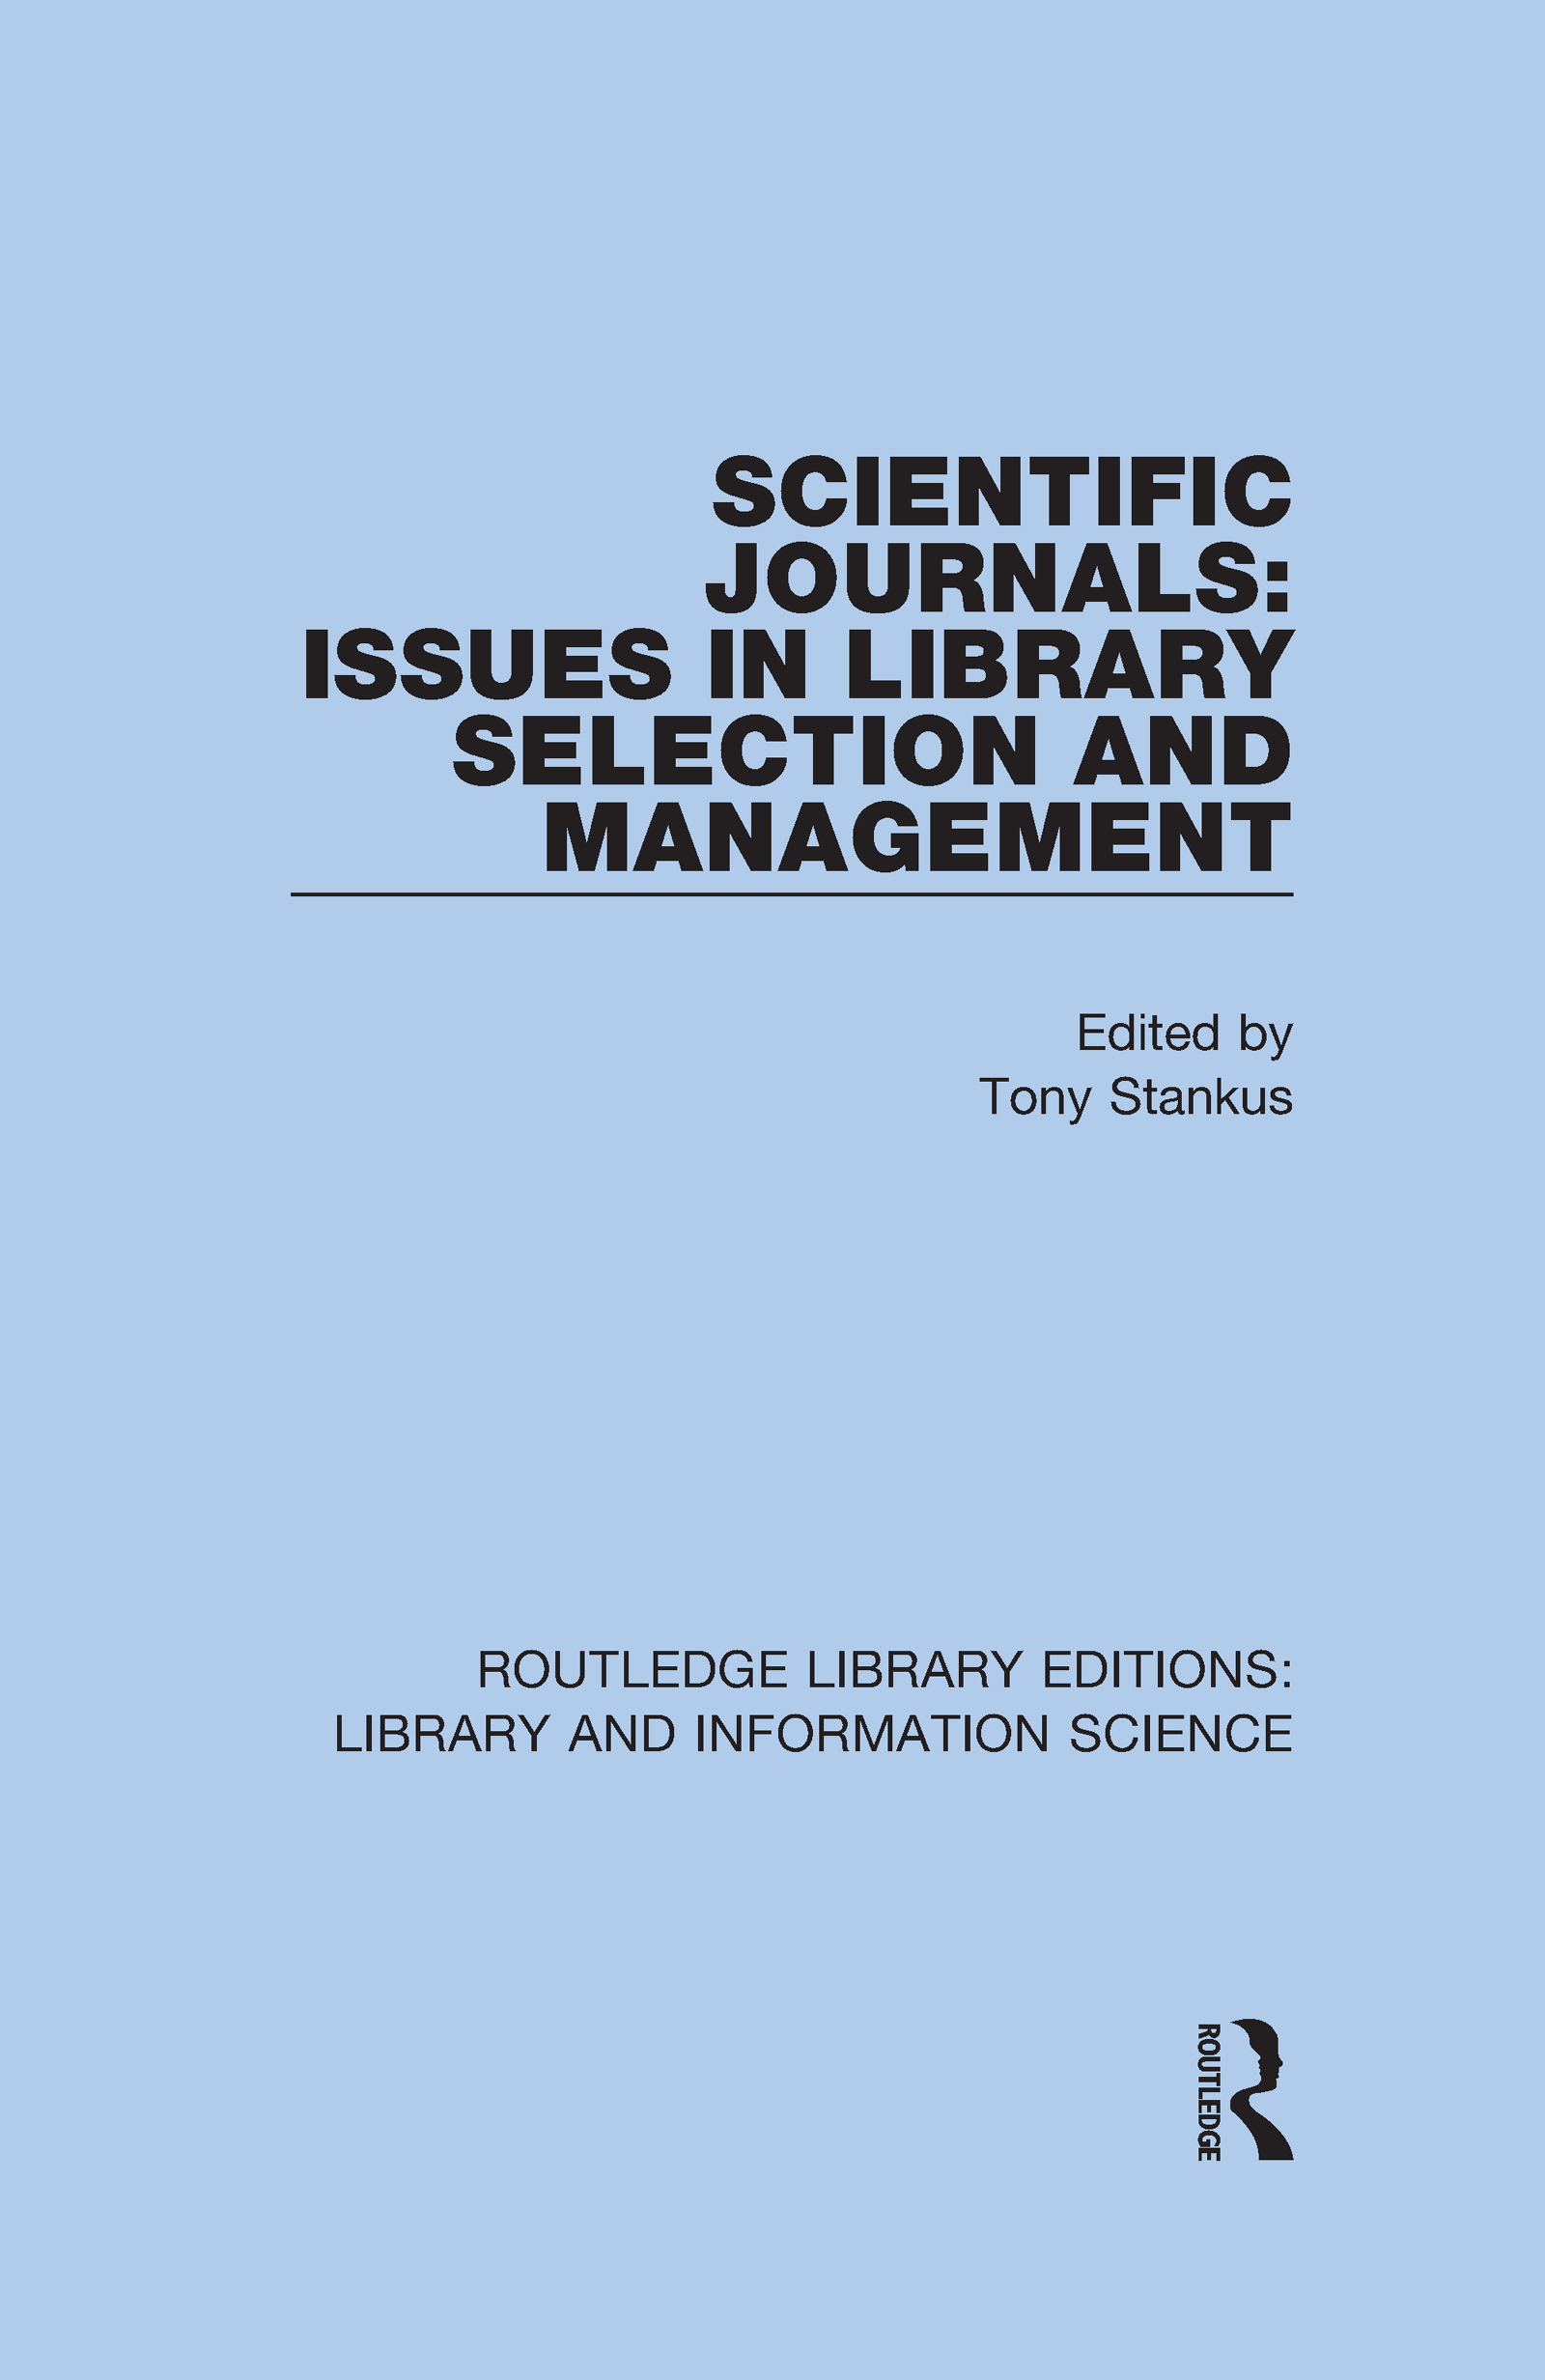 Scientific Journals: Issues in Library Selection and Management